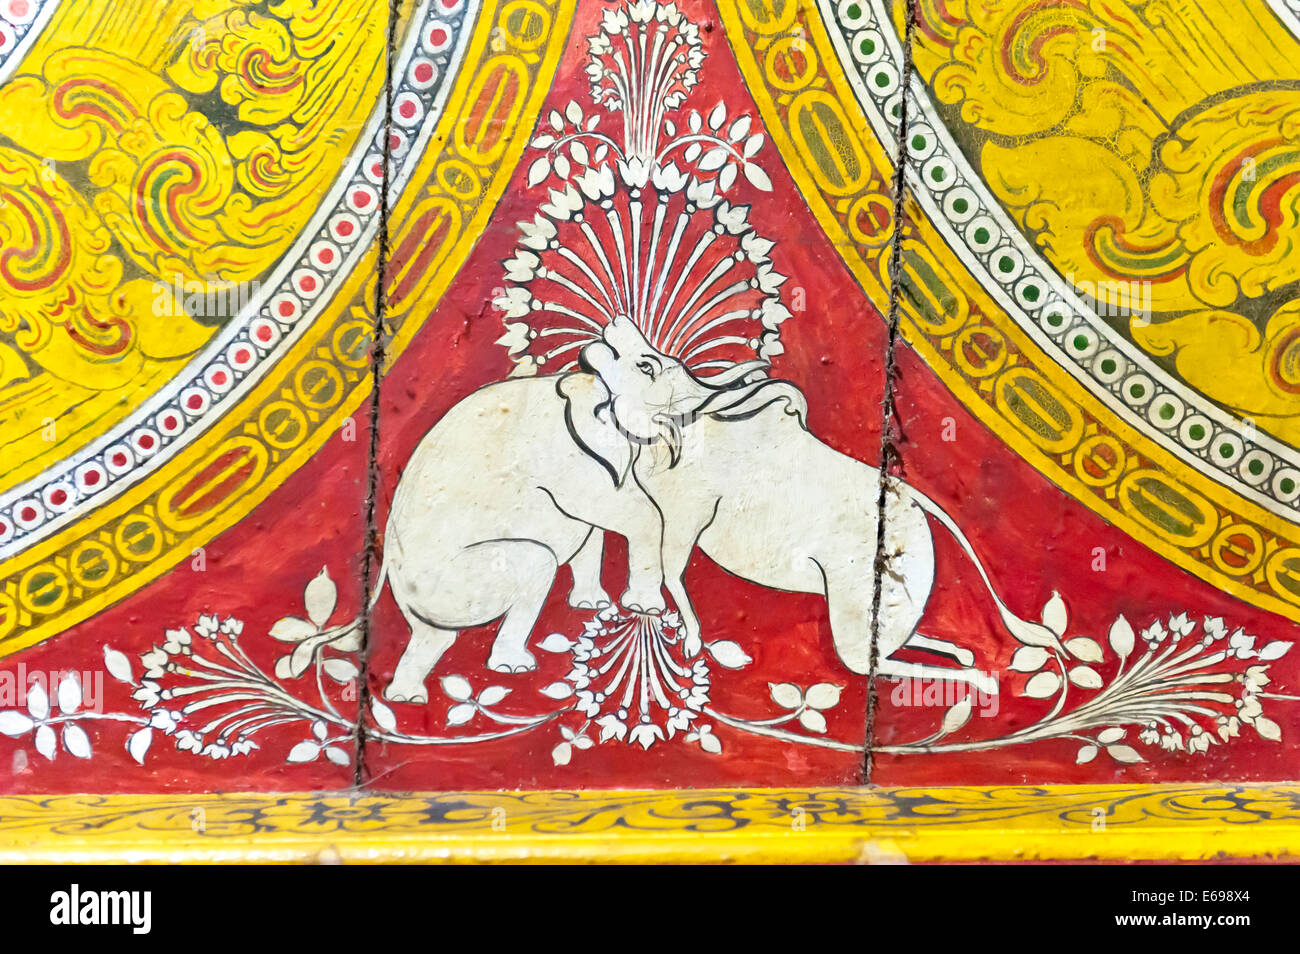 Buddhist painting on wood, optical illusion, elephant and cow with just one head, Dowa Temple, rock temple, Bandarawela - Stock Image